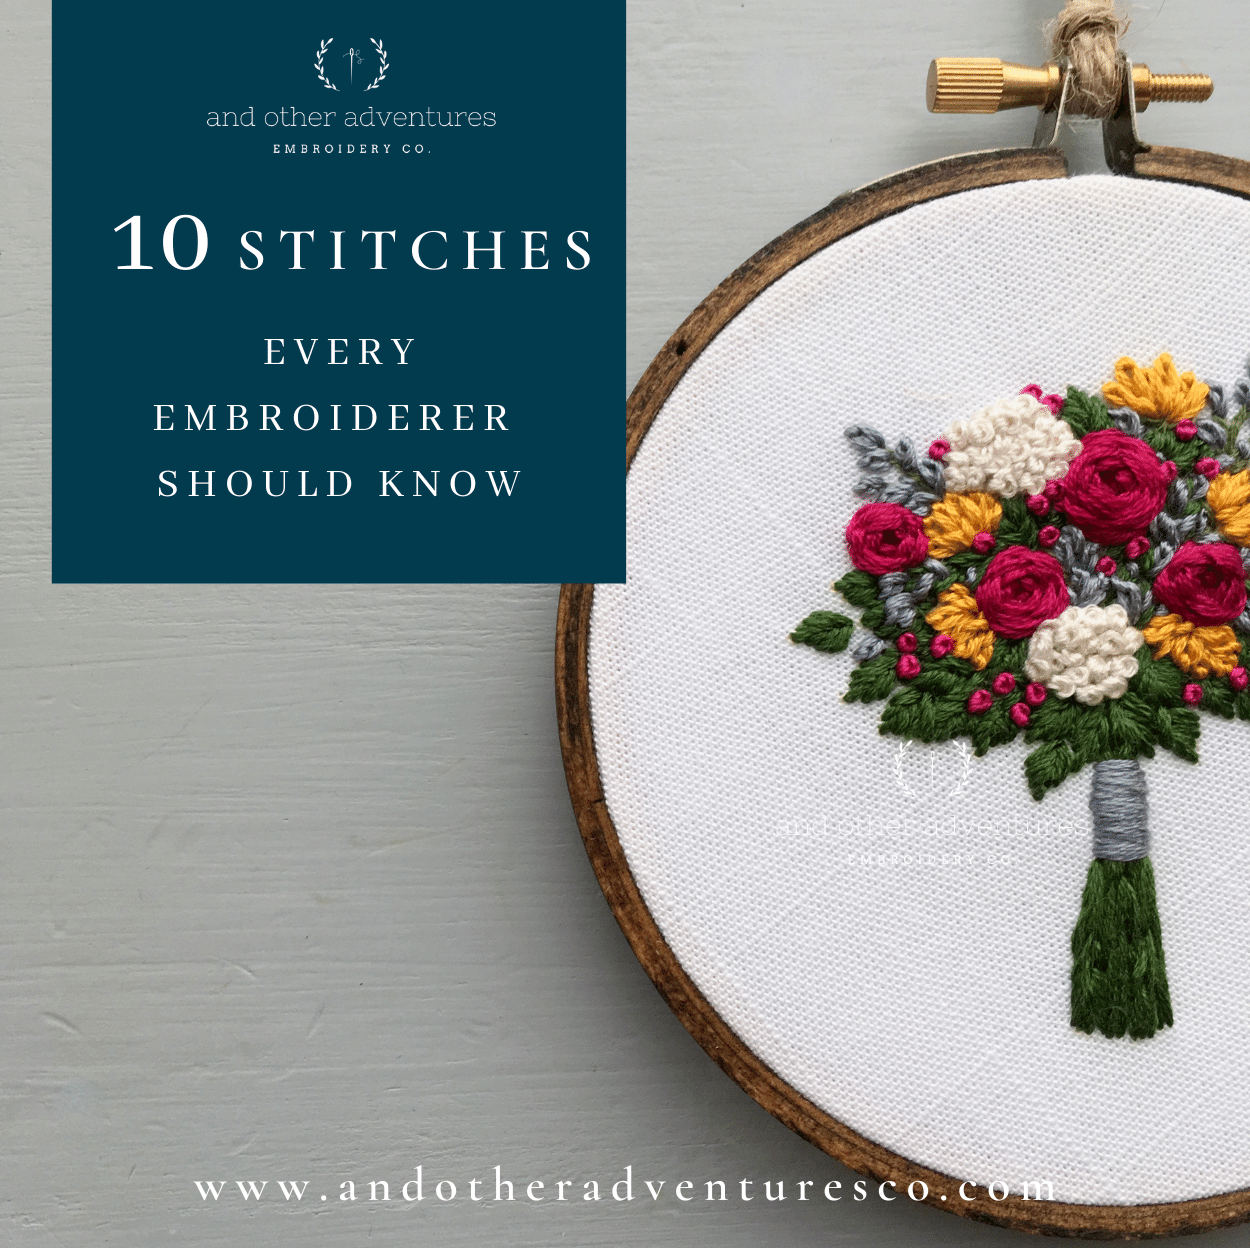 10 Stitches Every Embroiderer Should Know | And Other Adventures Embroidery Co